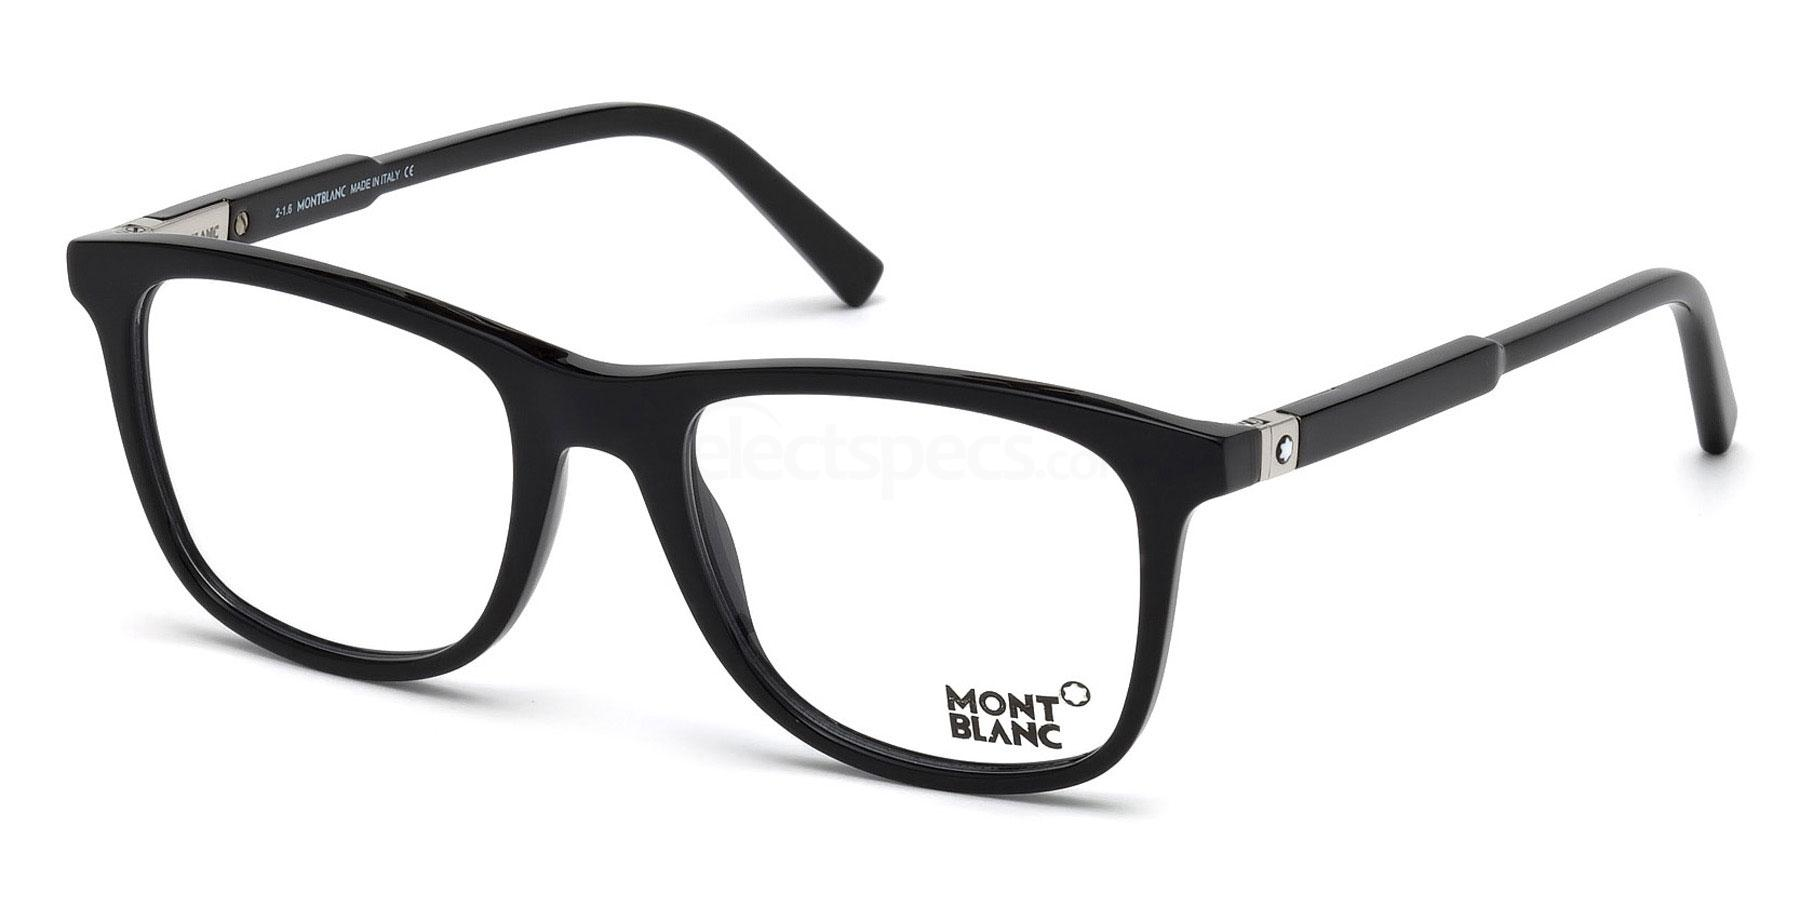 001 MB0637 Glasses, Mont Blanc